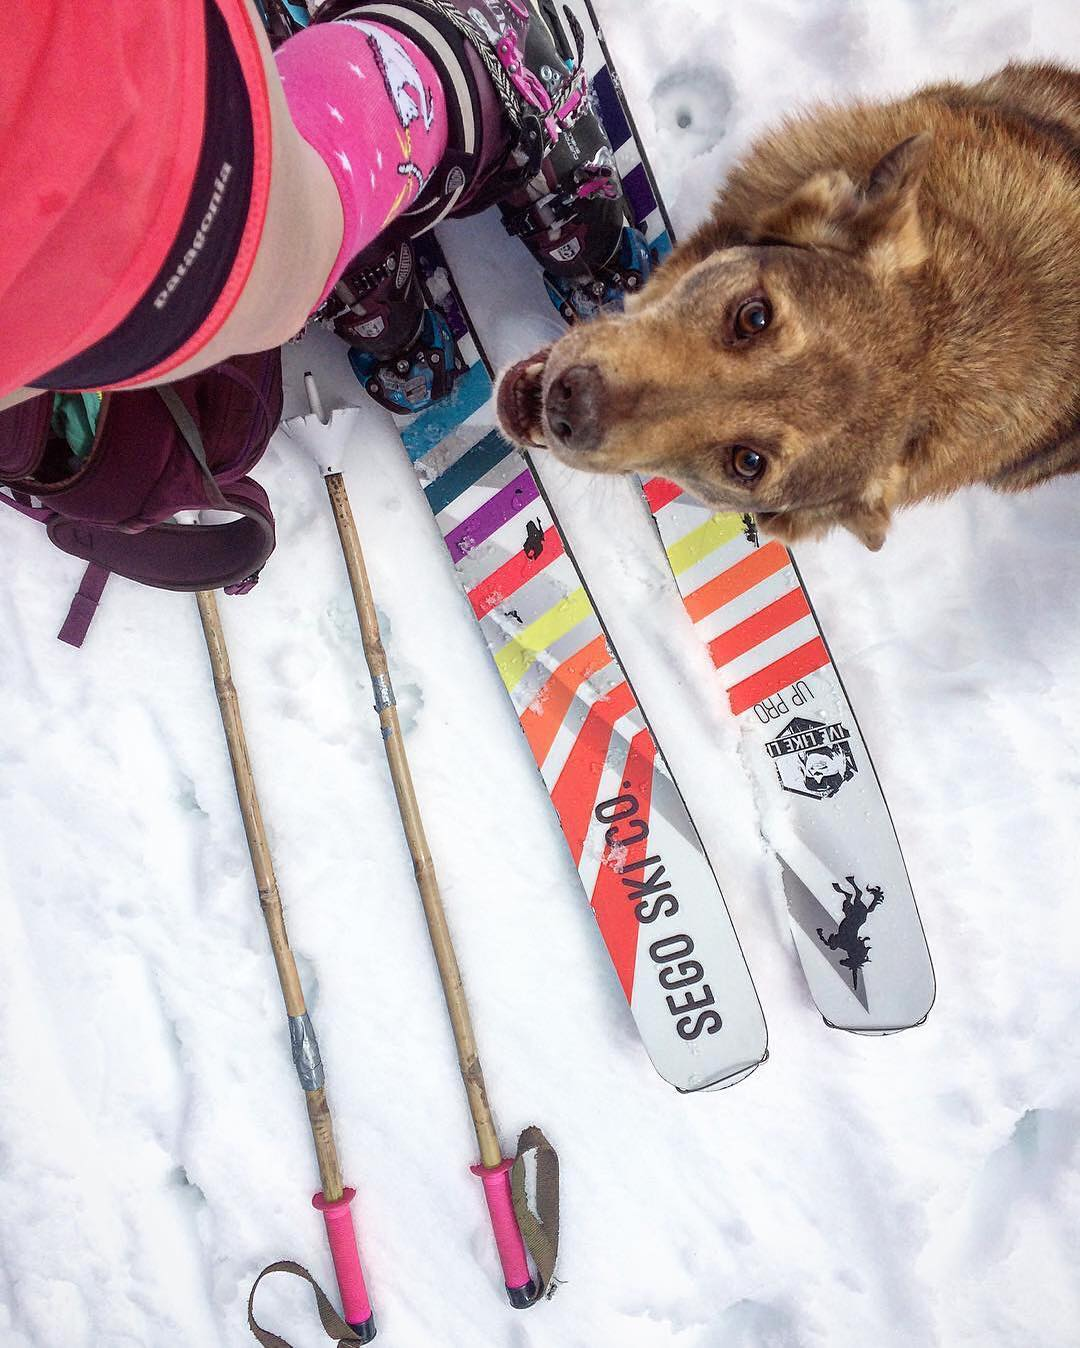 You ready to go, or what?! Promo code SUMMER25 = 25% OFF at PandaPoles.com!  Repost: @meaghann_gaffney  #PandaPoles #Skiing #PandaDog #TribeUP!